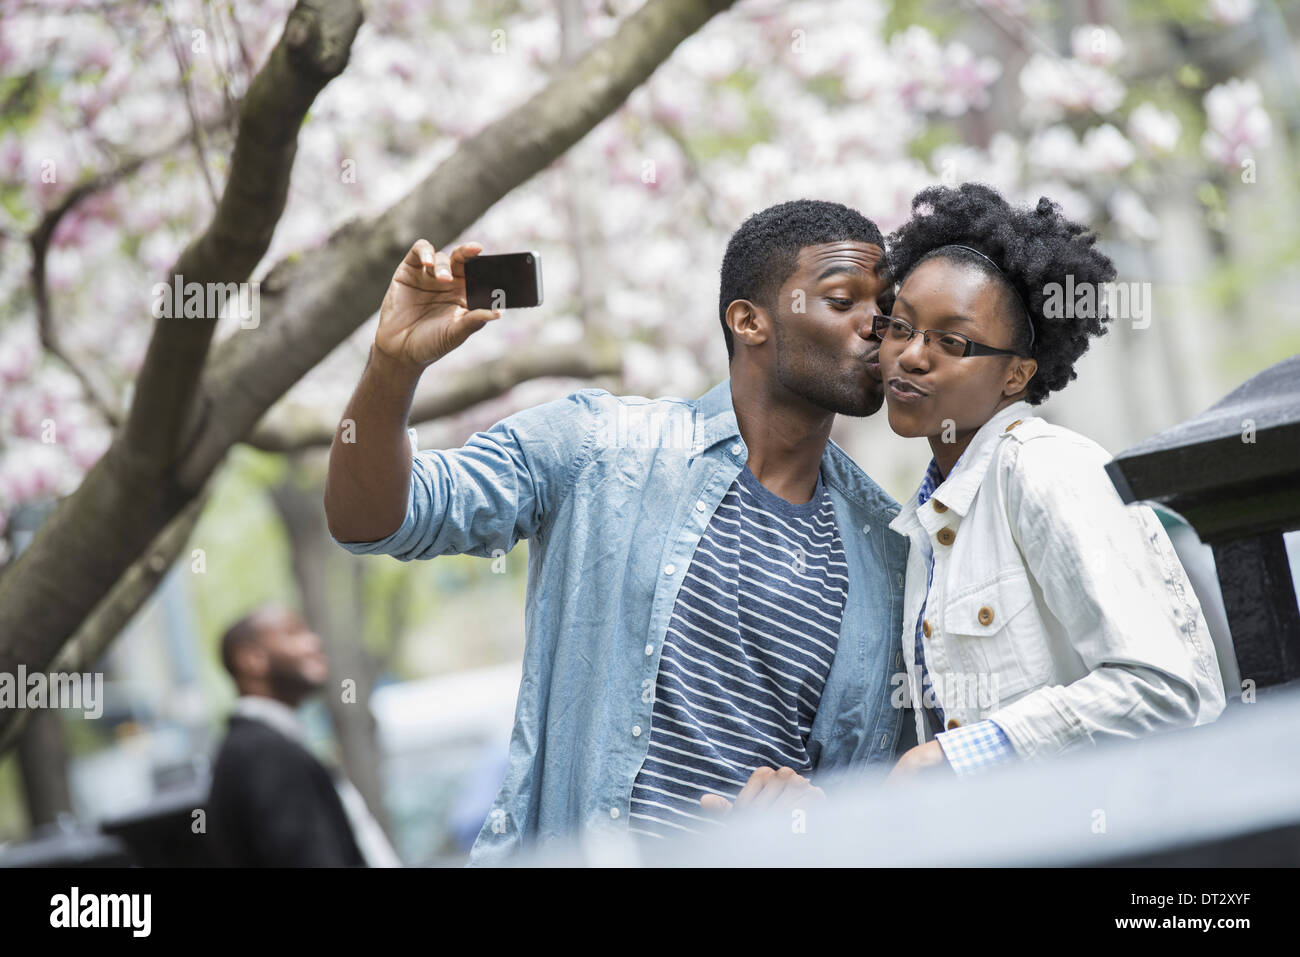 A man kissing a woman and taking a photograph with a handheld mobile phone - Stock Image